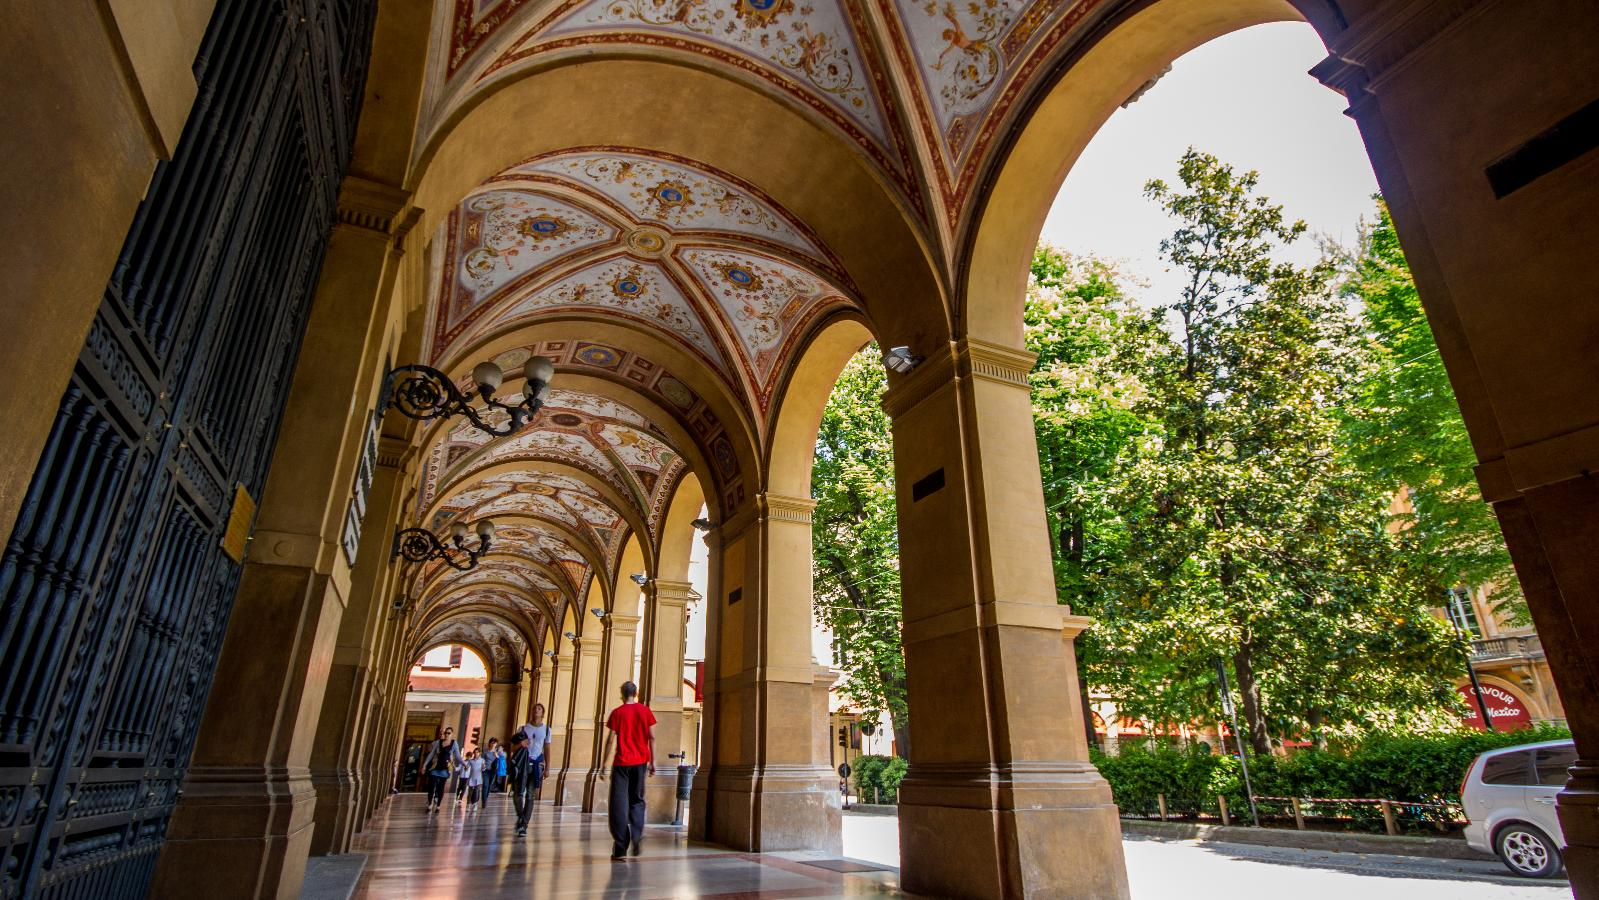 Porticoes of Piazza Cavour, Bologna Welcome CC BY 4.0